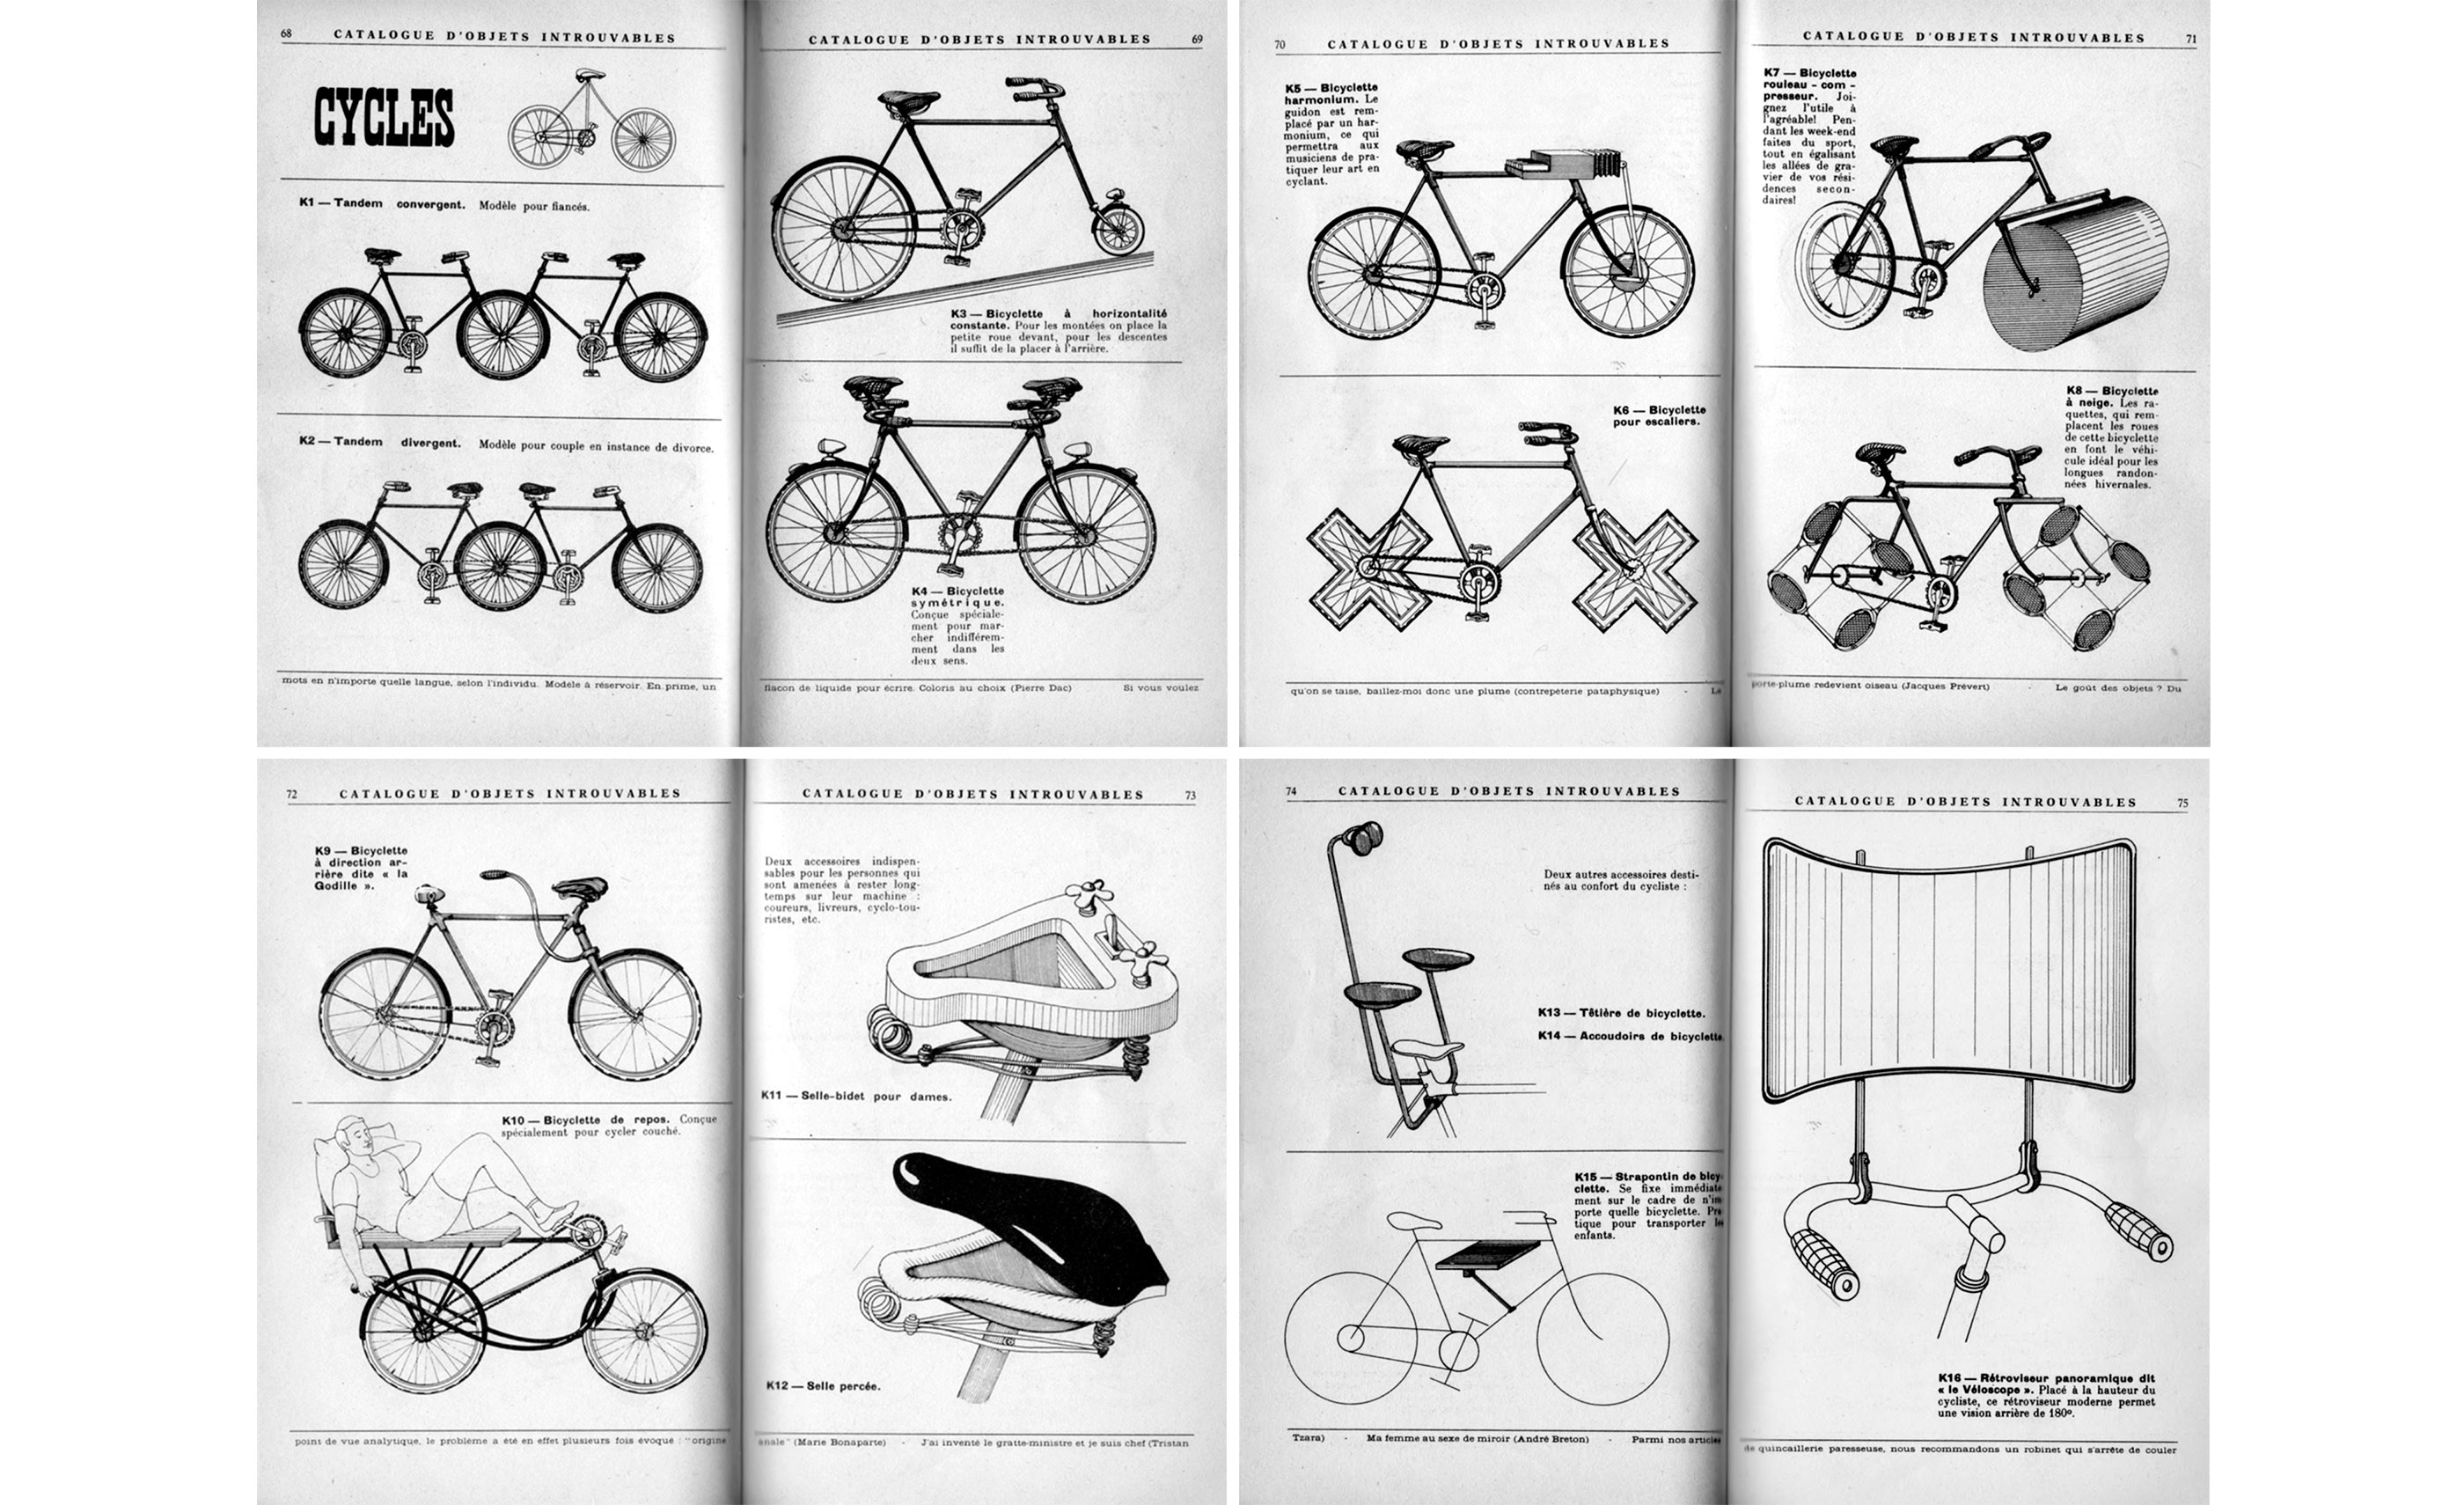 Catalogue-dobjets-introuvables-Carelman-cycles-02-index-grafik